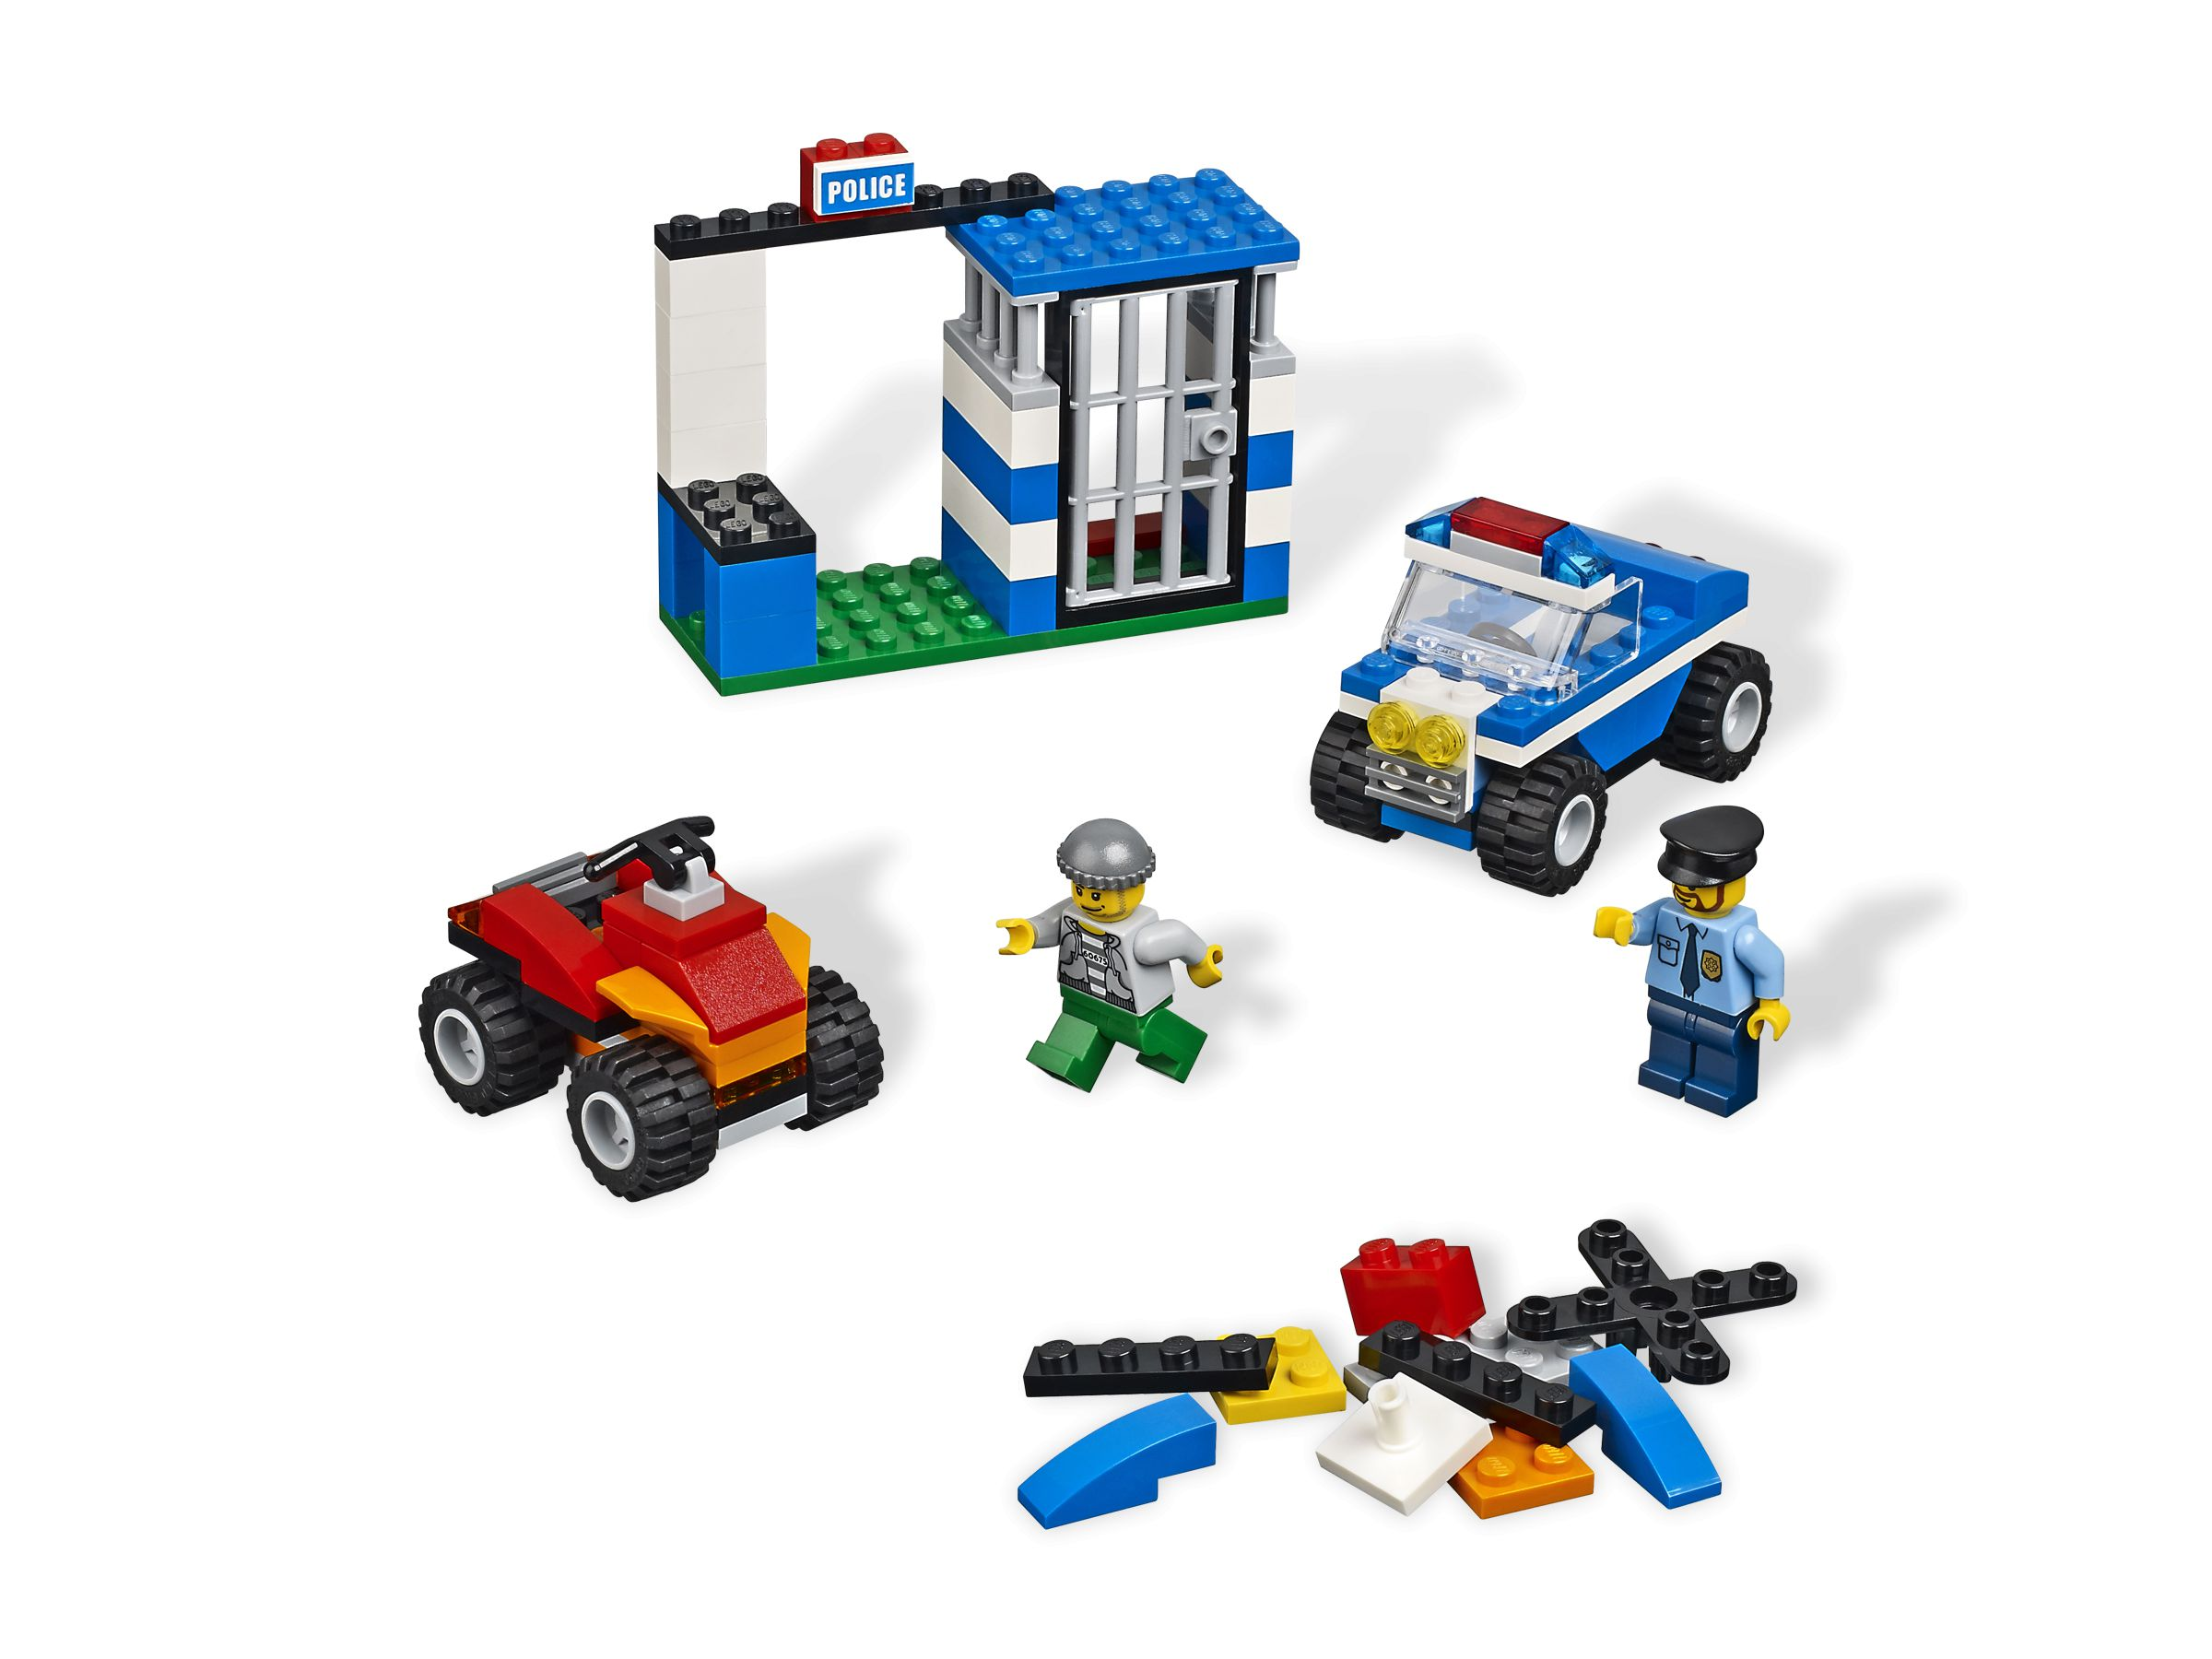 LEGO Bricks and More 4636 Police Building Set LEGO_4636.jpg